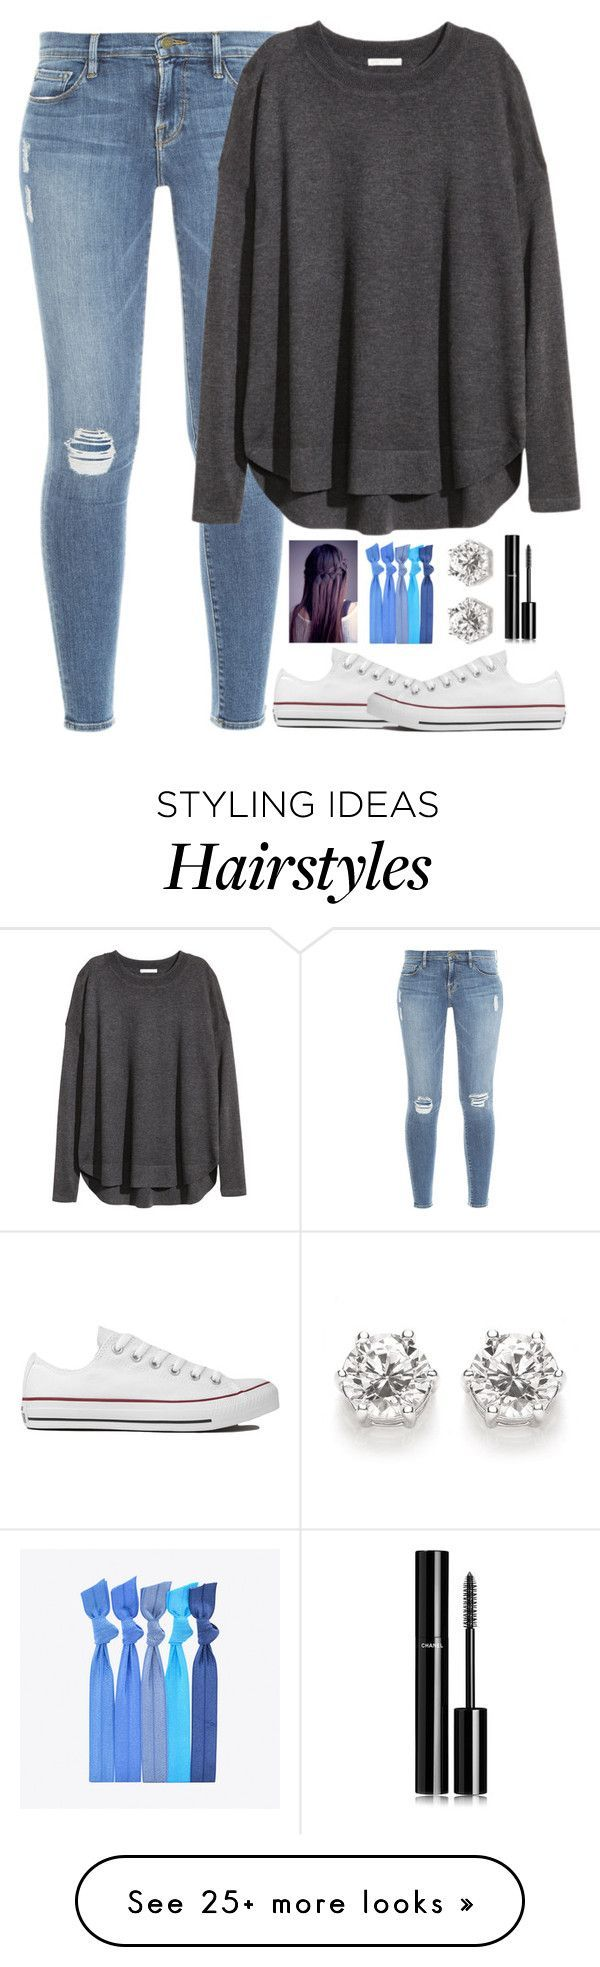 fall u winter outfit ideaus to copy right now frame denim